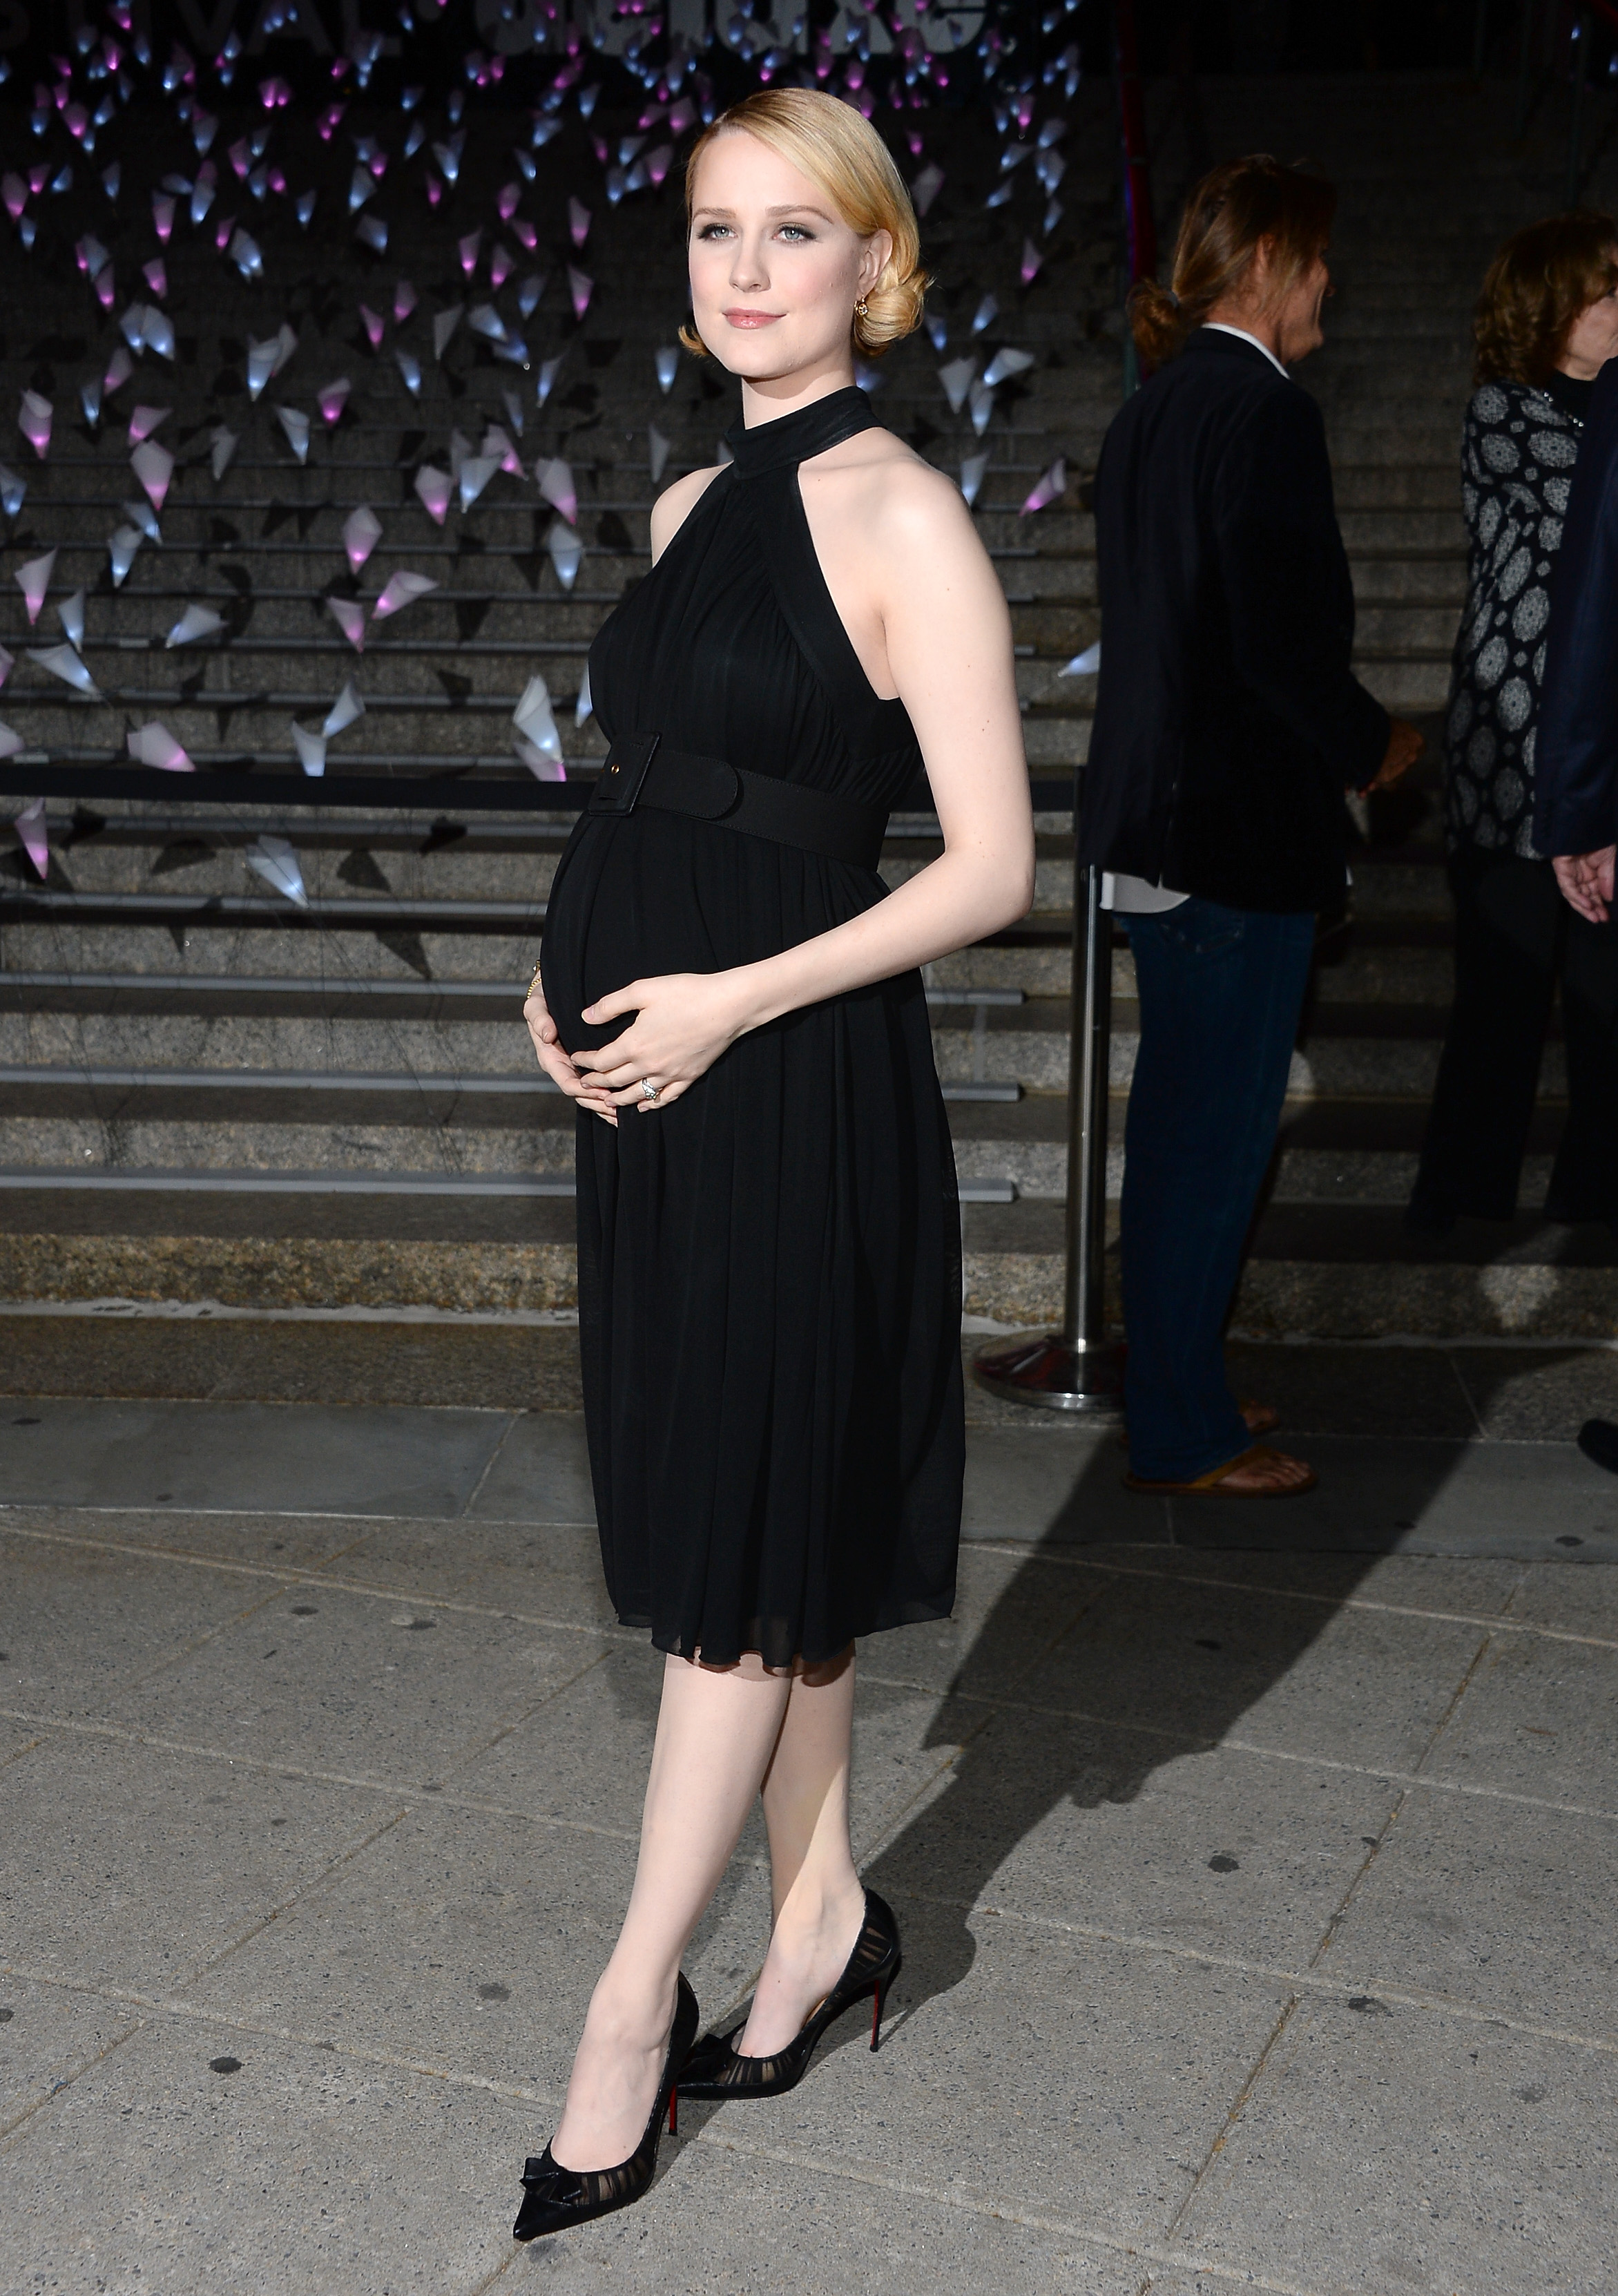 Evan Rachel Wood posed in front of stairs at Vanity Fair's Tribeca Film Festival party.